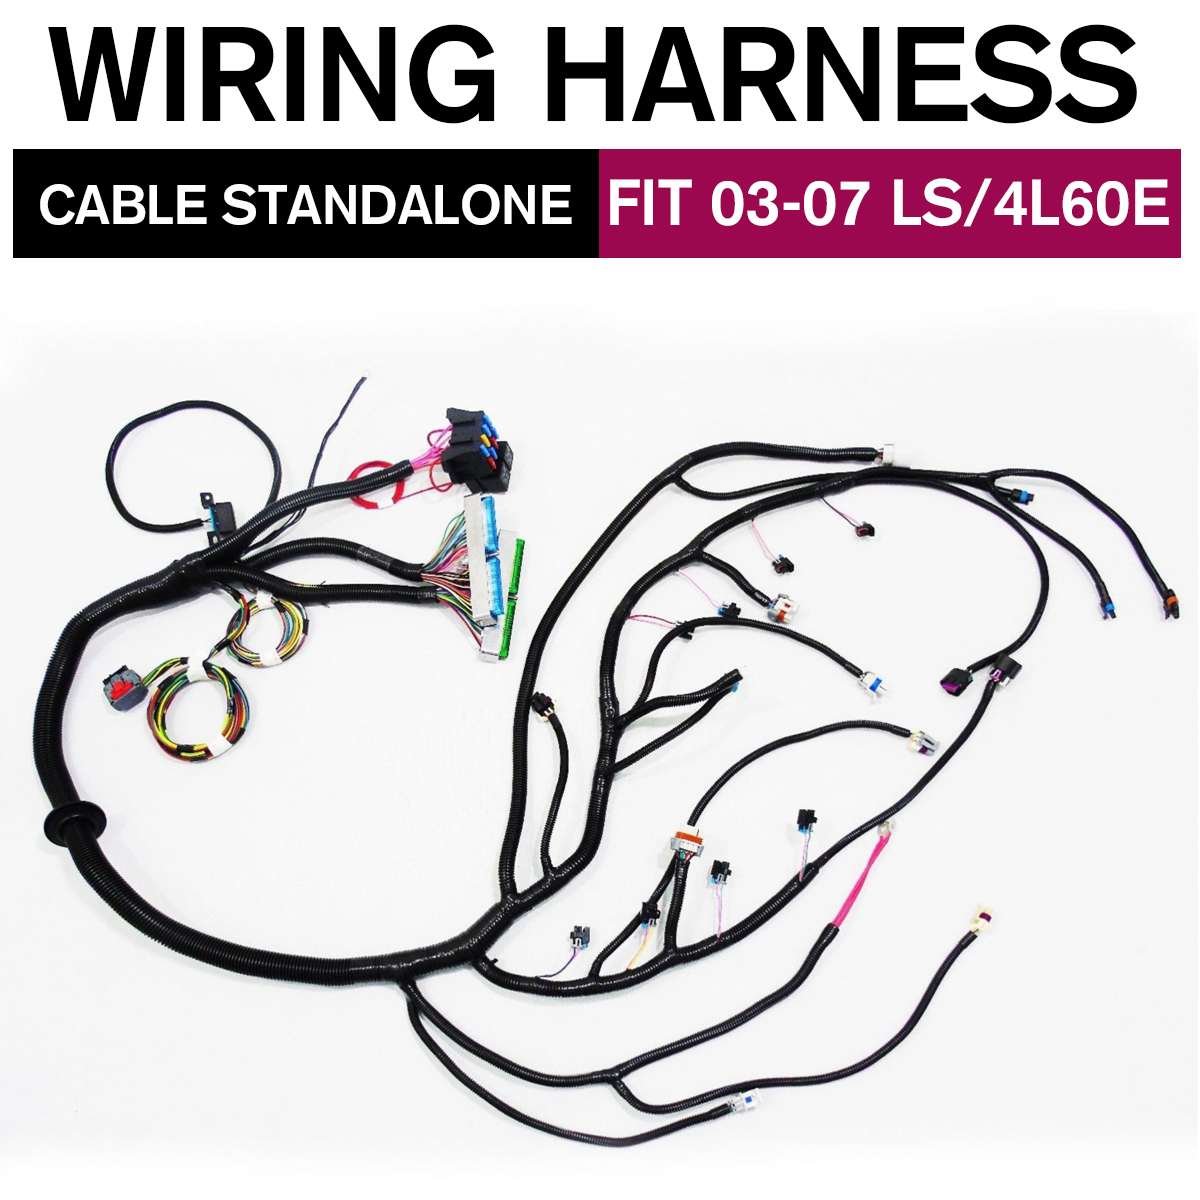 03-07 LS VORTEC STANDALONE WIRING HARNESS W/4L60E DBC 97-06 T56 WIRING HARNESS Drive By Wire 4.8 5.3 6.0 3 Types